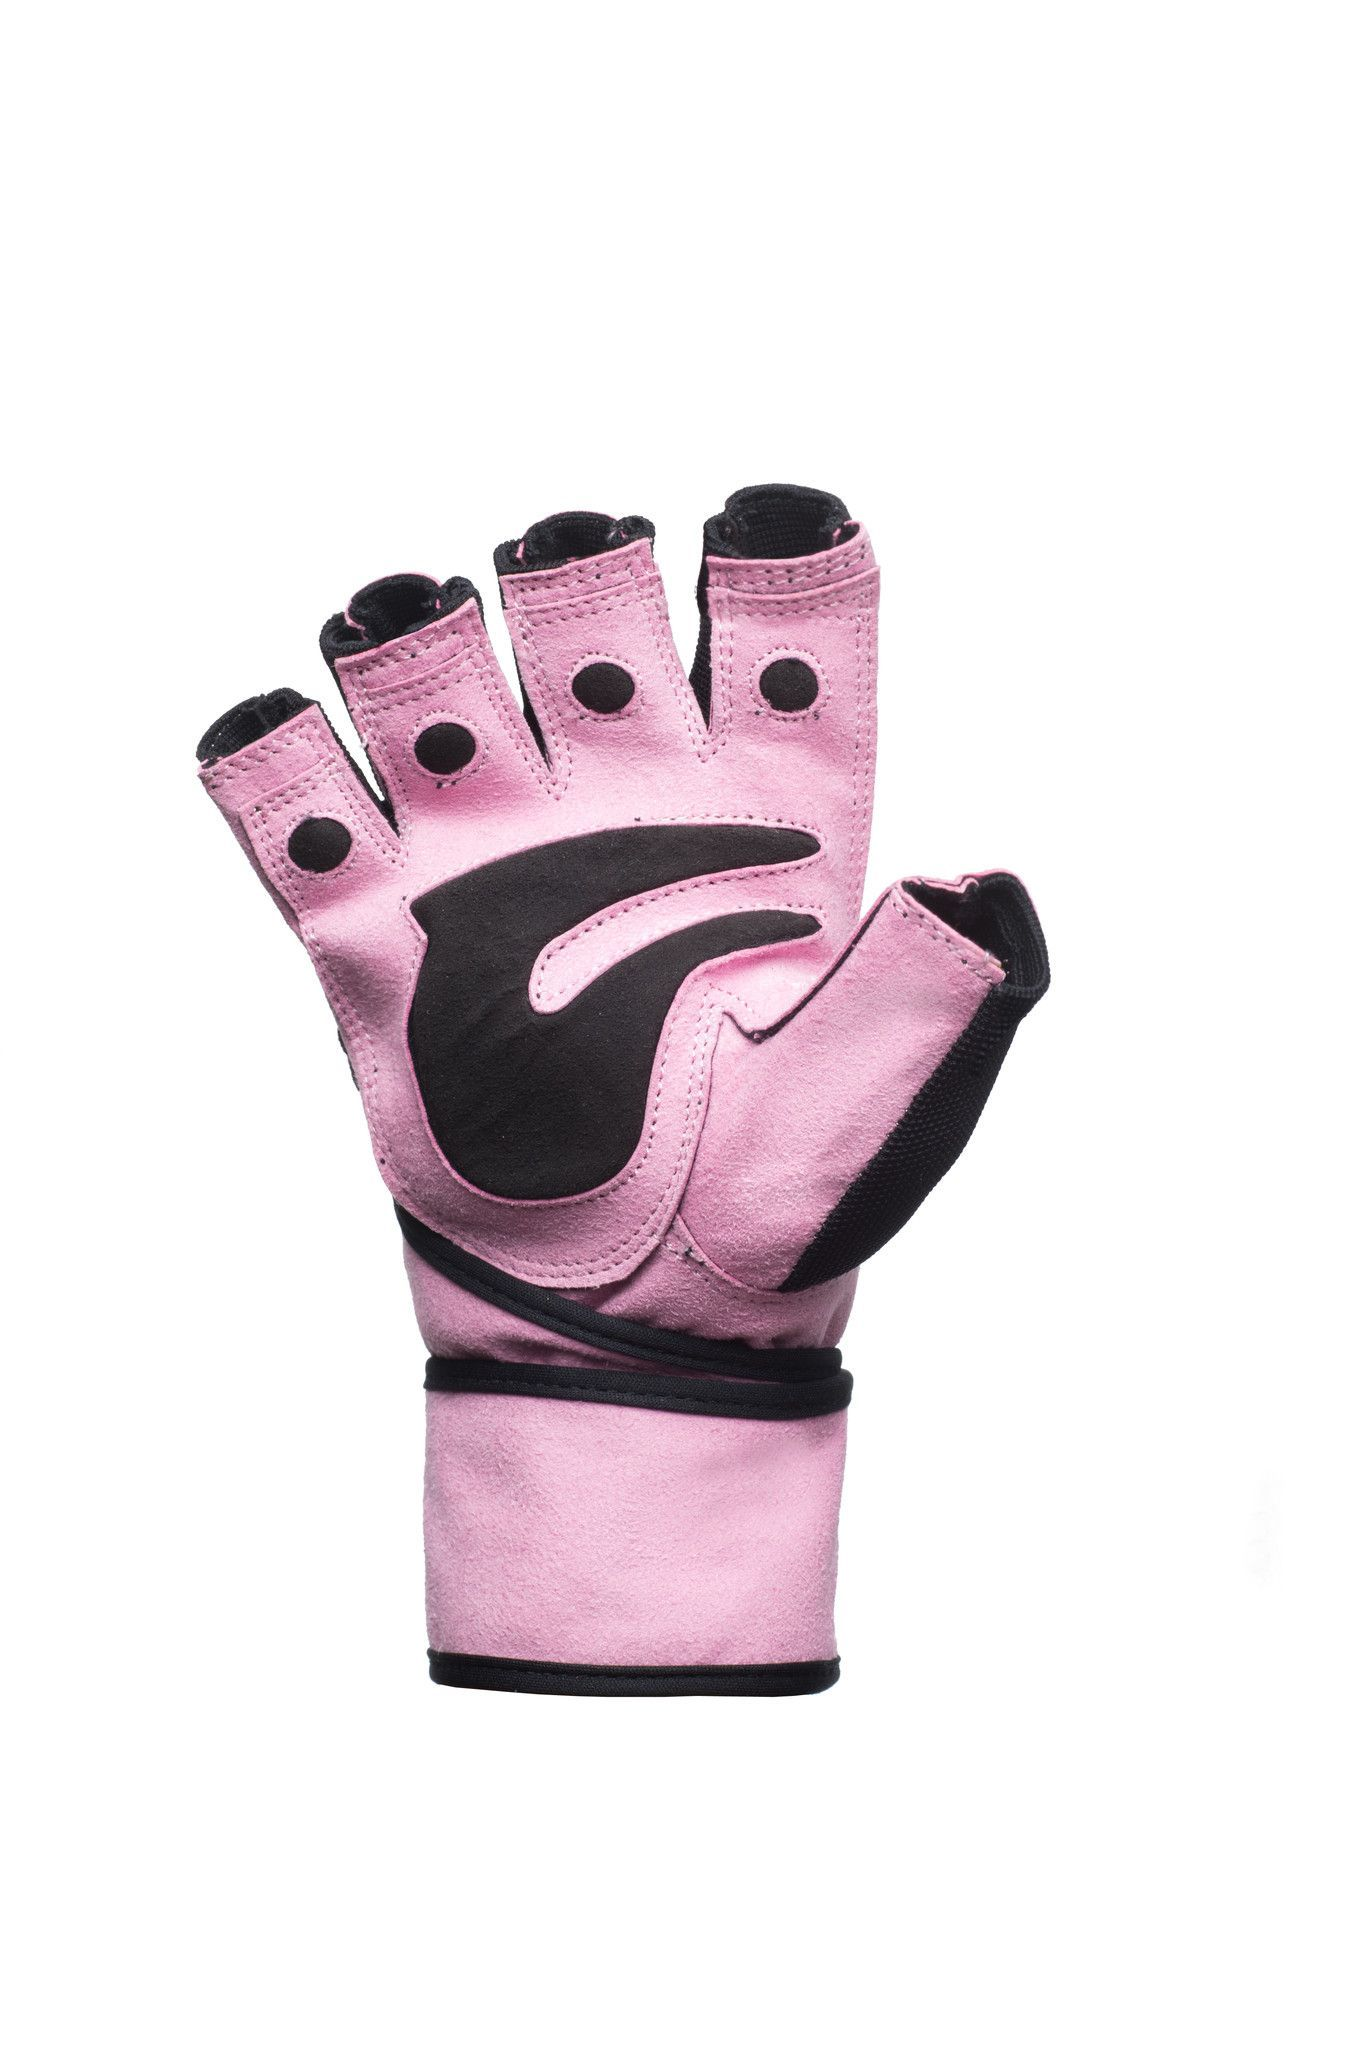 Motorcycle gloves carpal tunnel syndrome - Ladies Heavy Duty Pink Weight Lifting Gloves With Padded Palm And Wrist Wraps